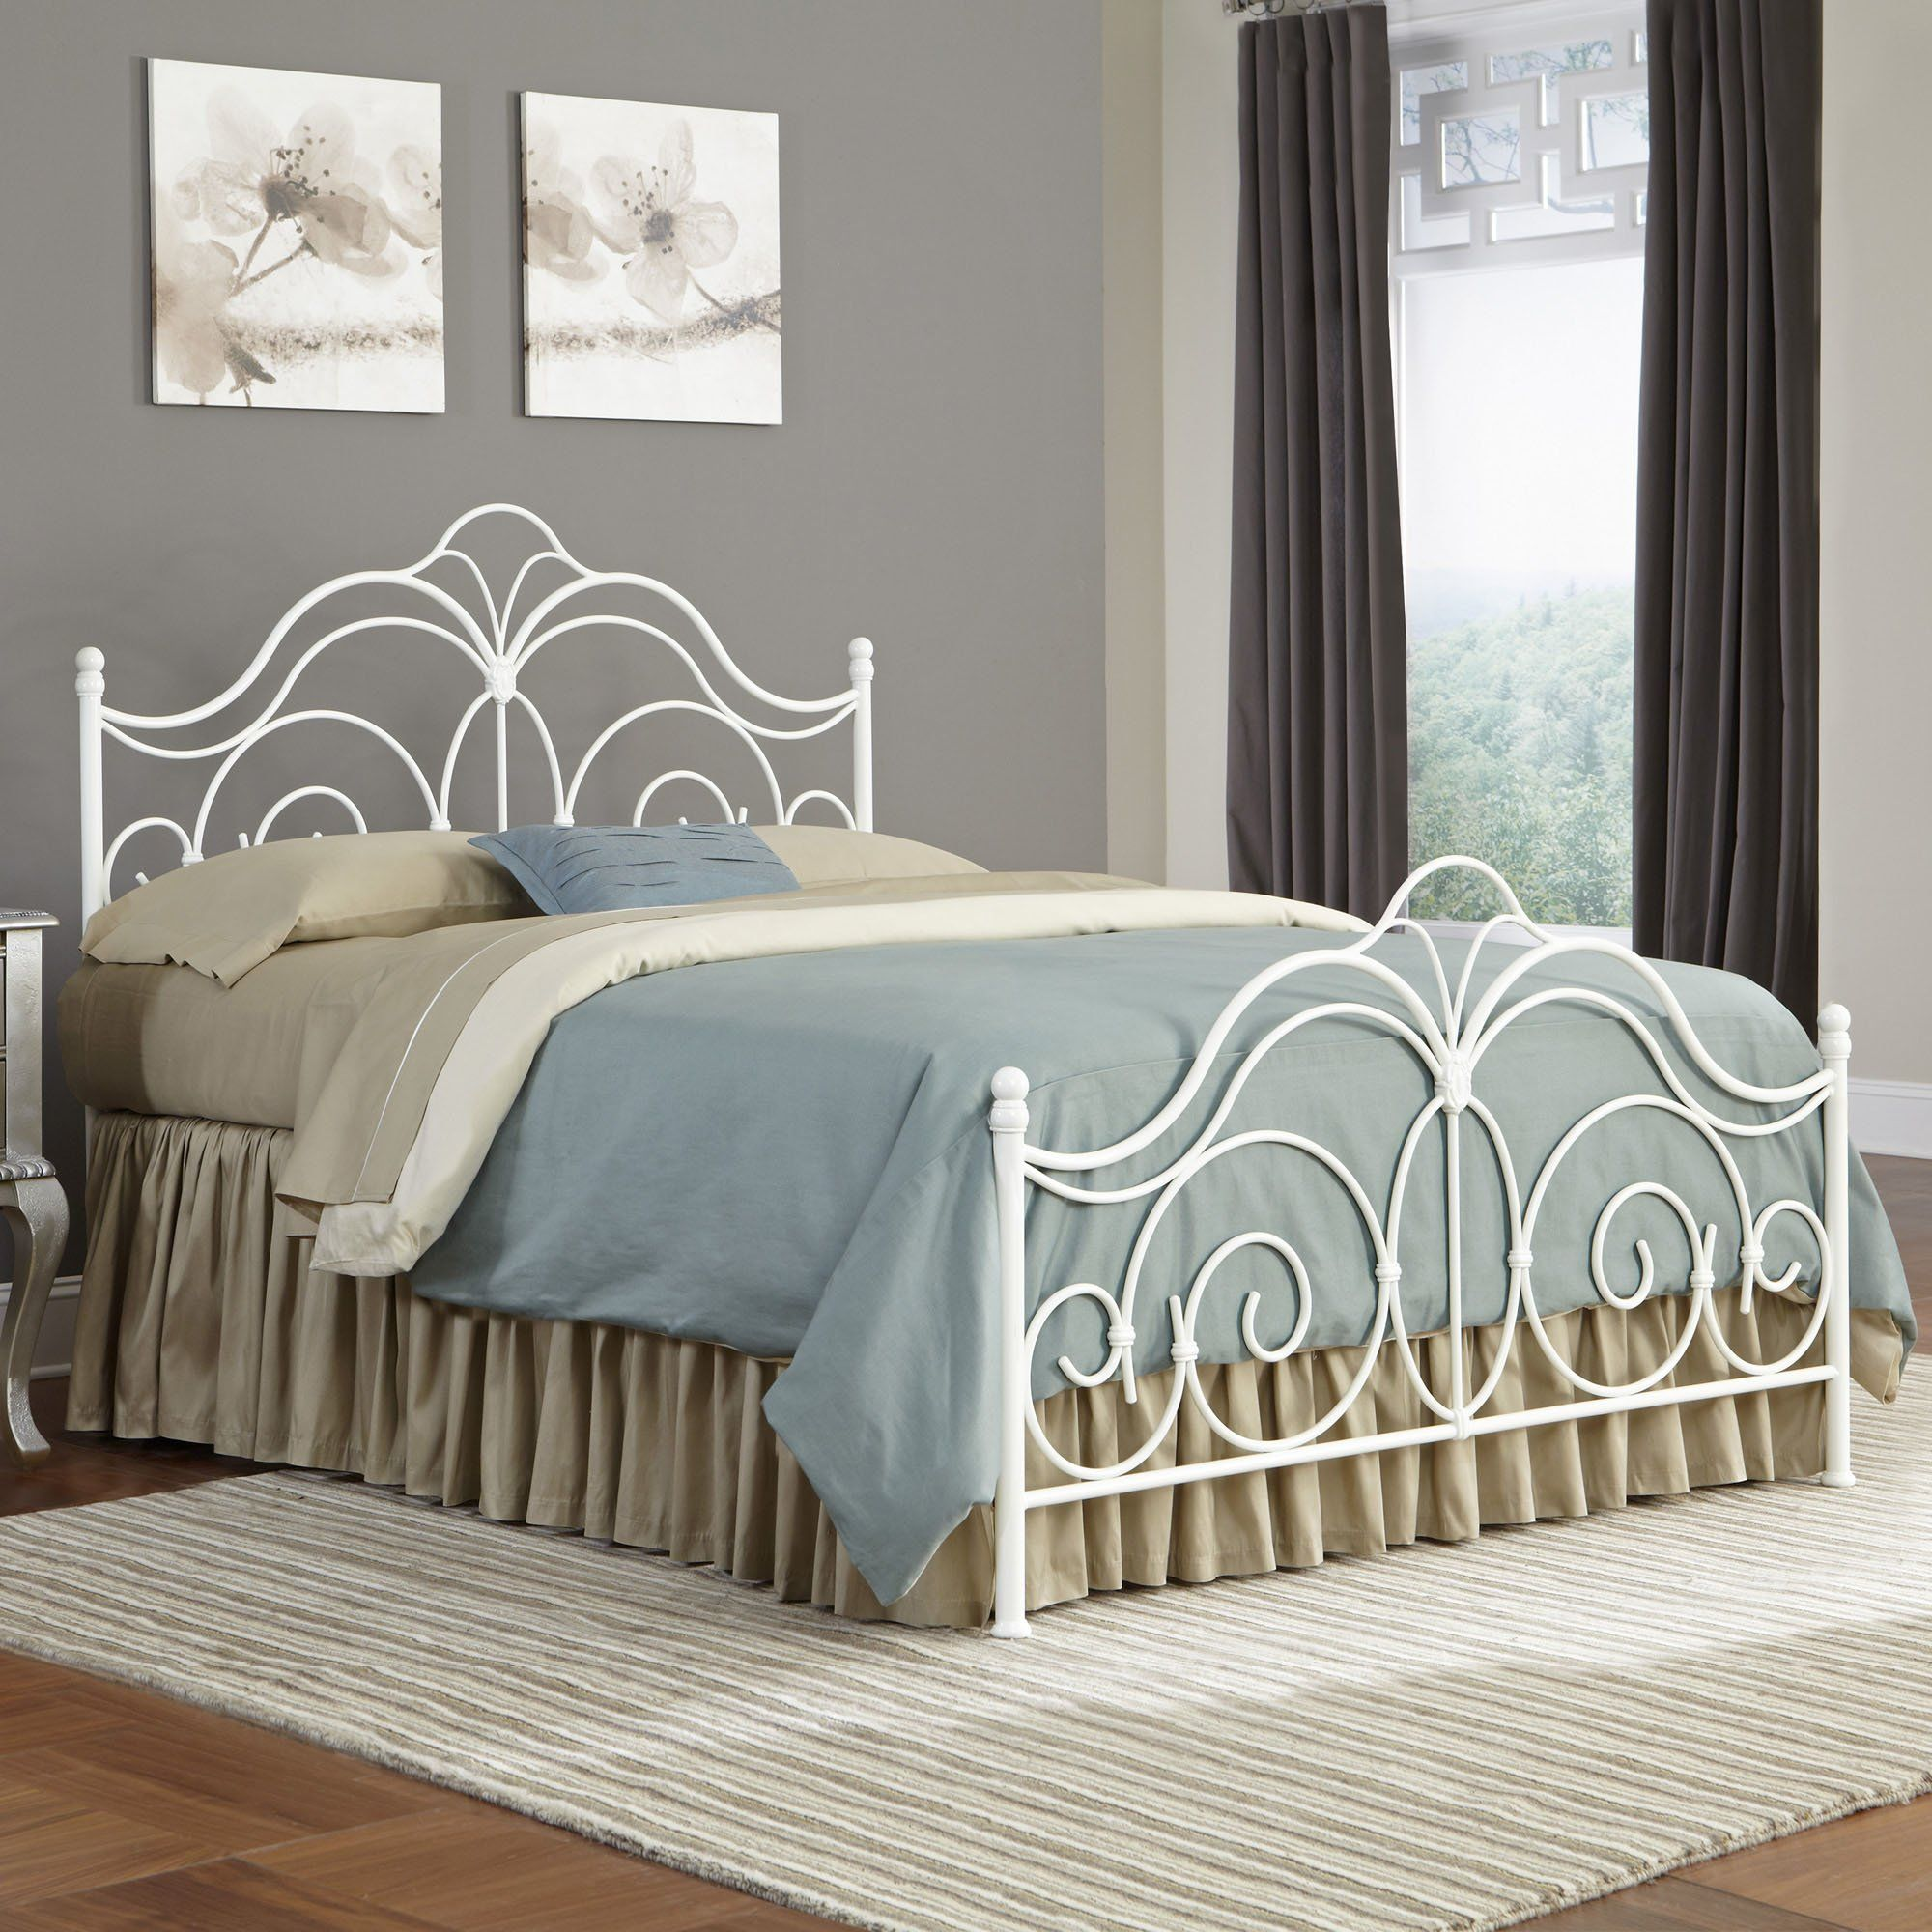 Elnora Panel Bed White metal bed, Bed styling, Metal beds